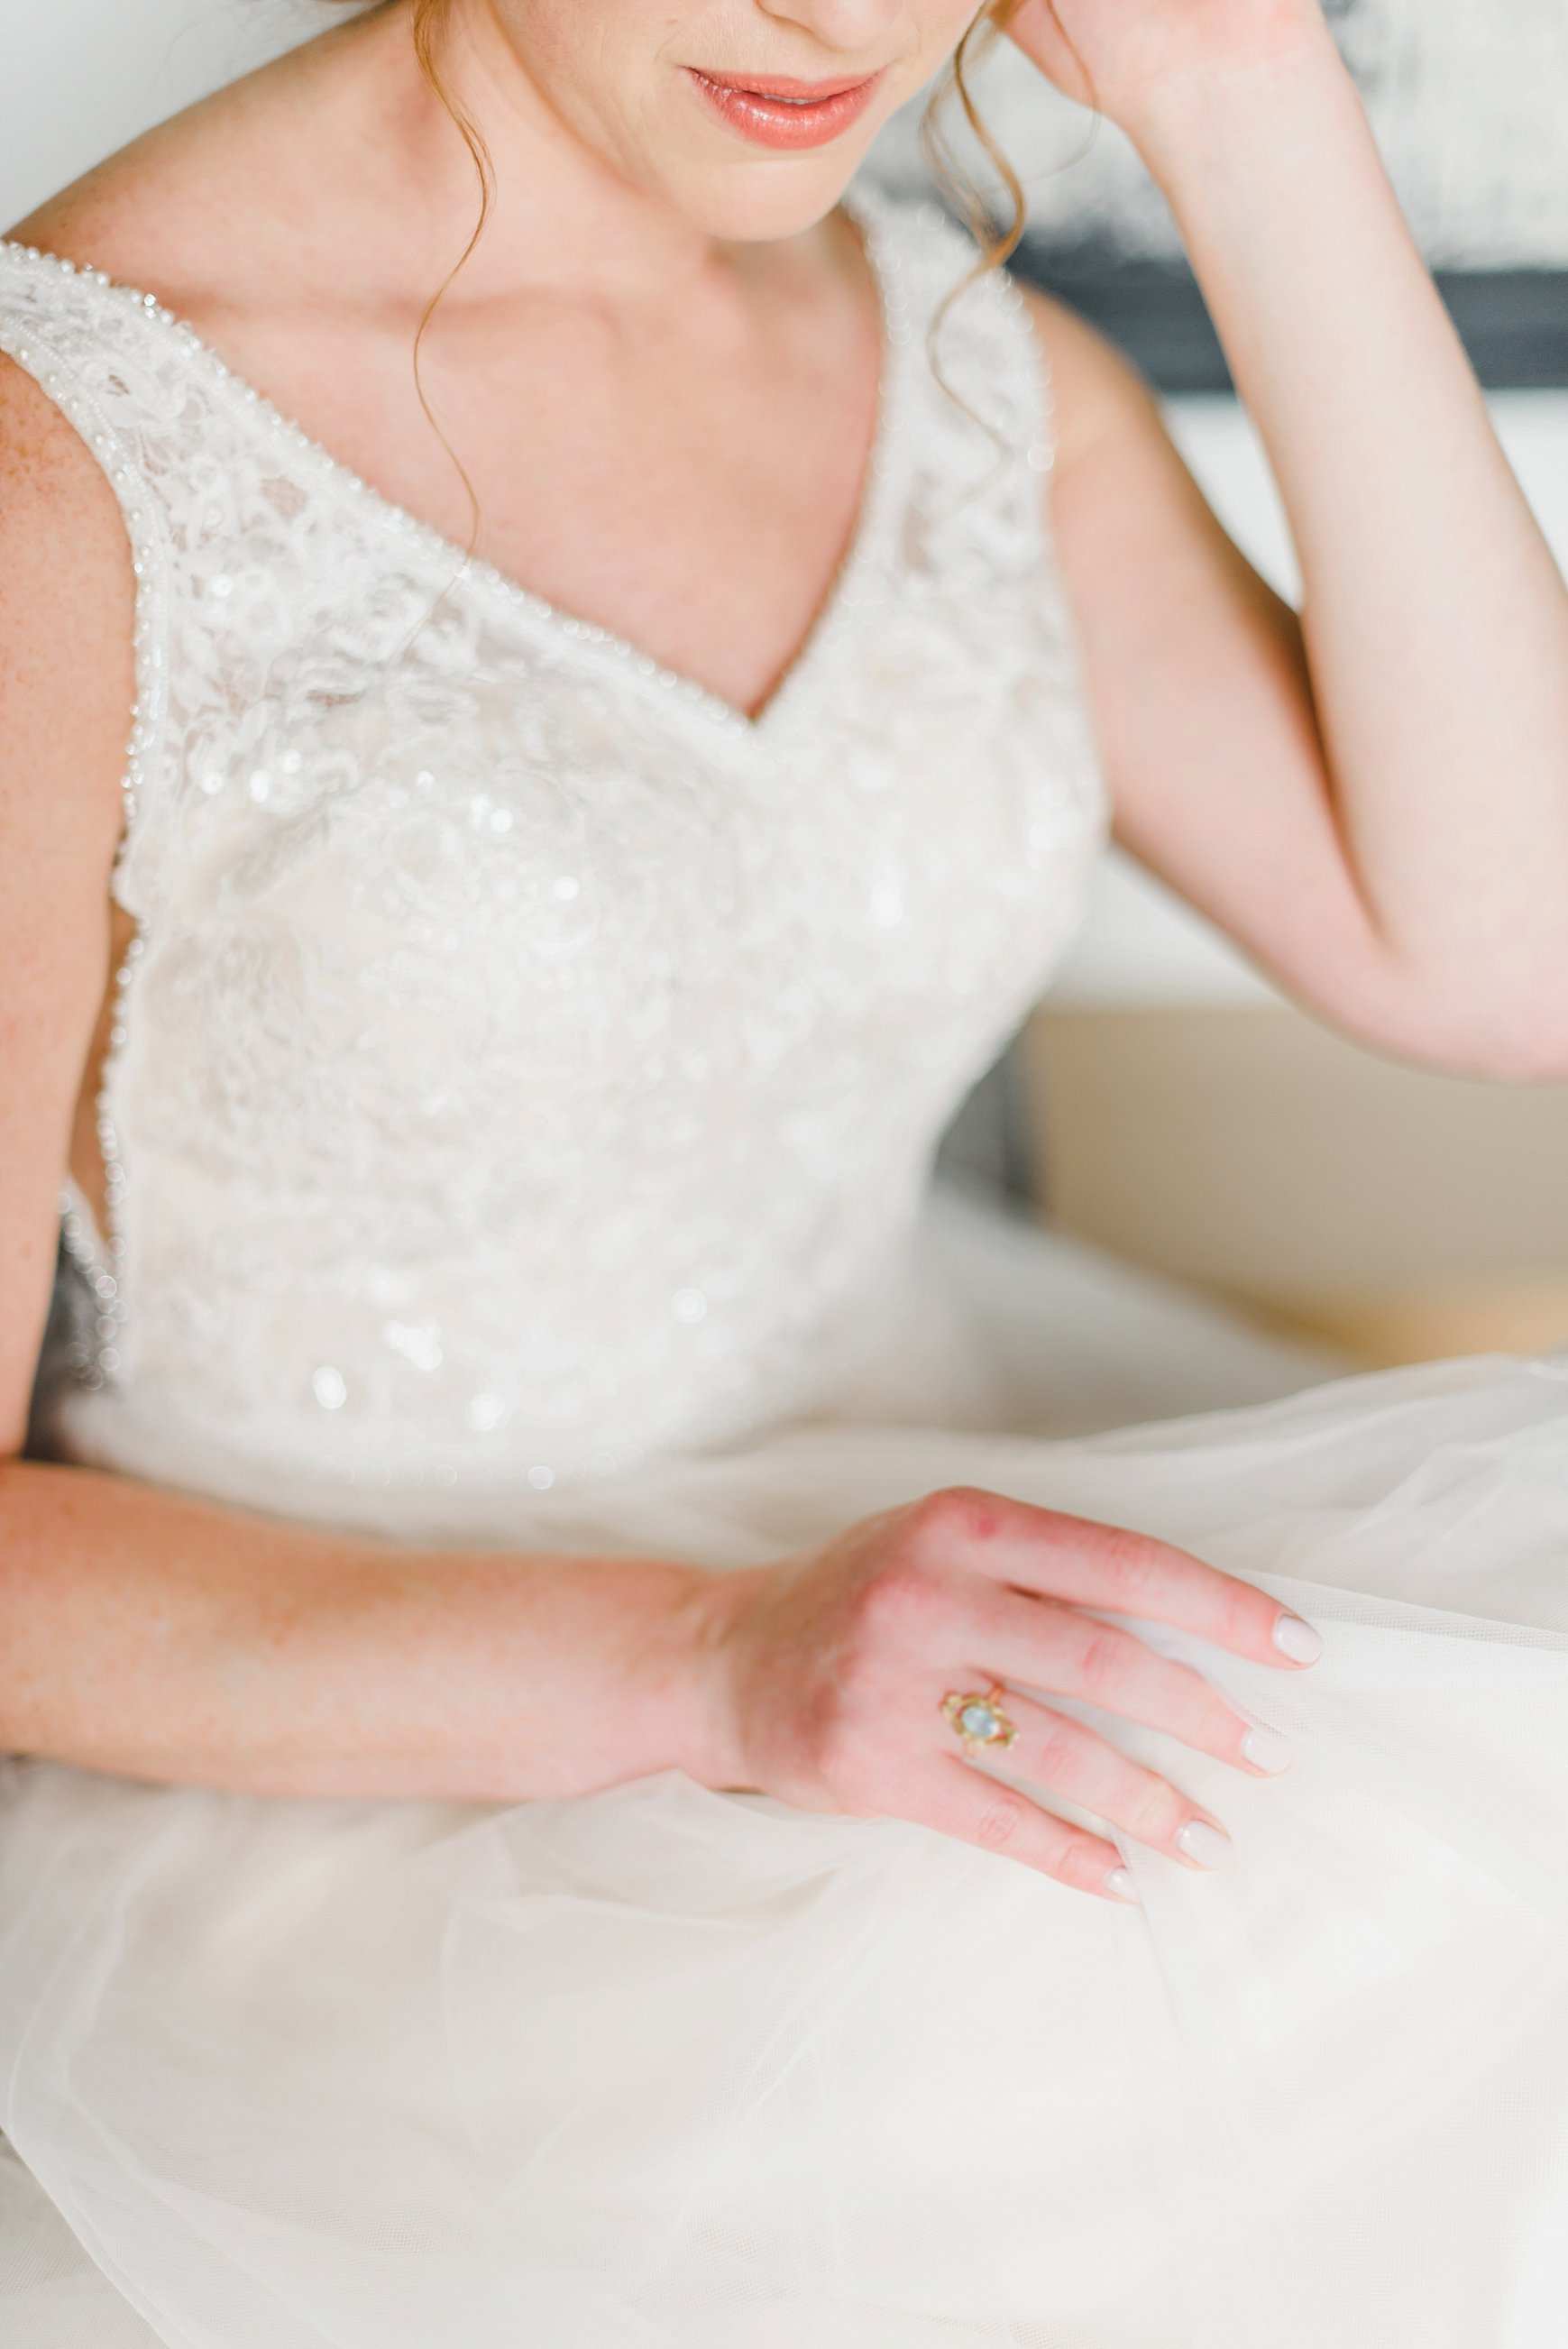 light airy indie fine art ottawa wedding photographer | Ali and Batoul Photography_0281.jpg